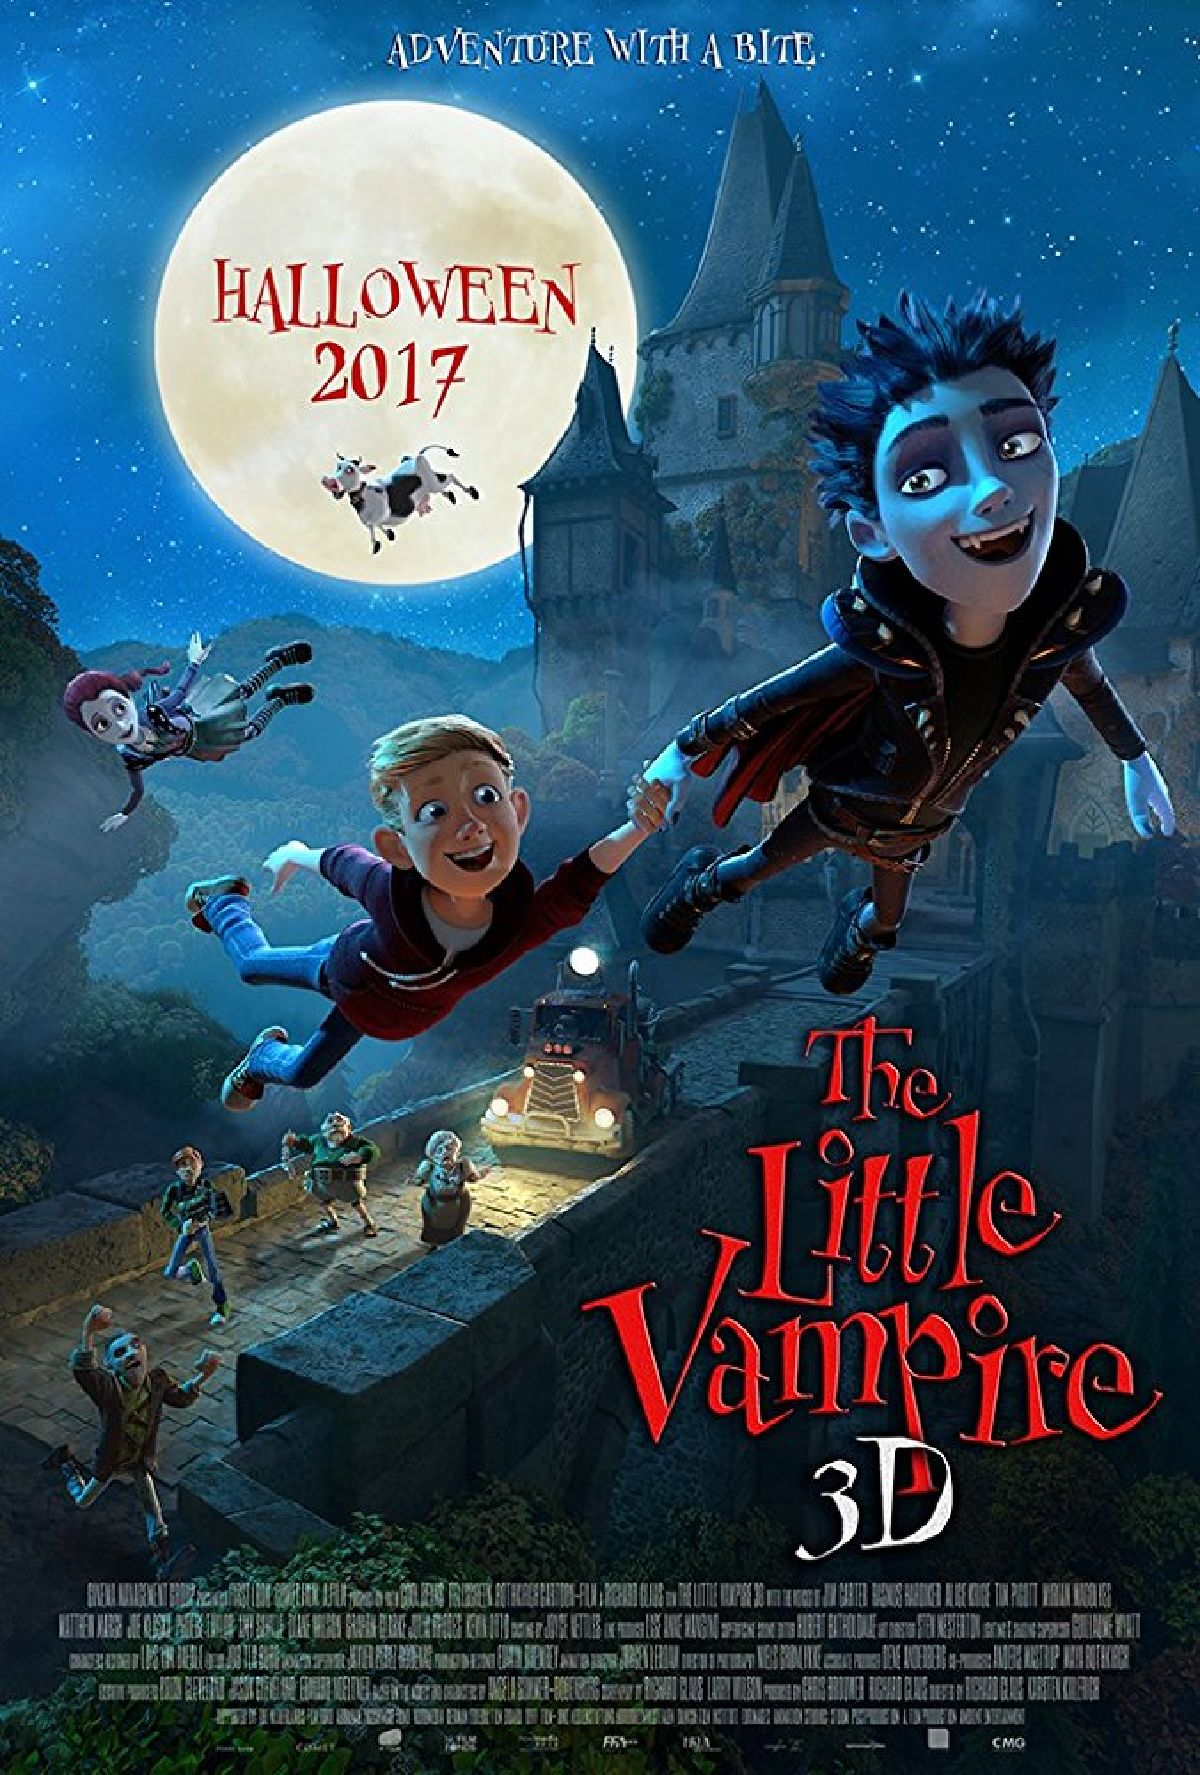 'The Little Vampire' movie poster